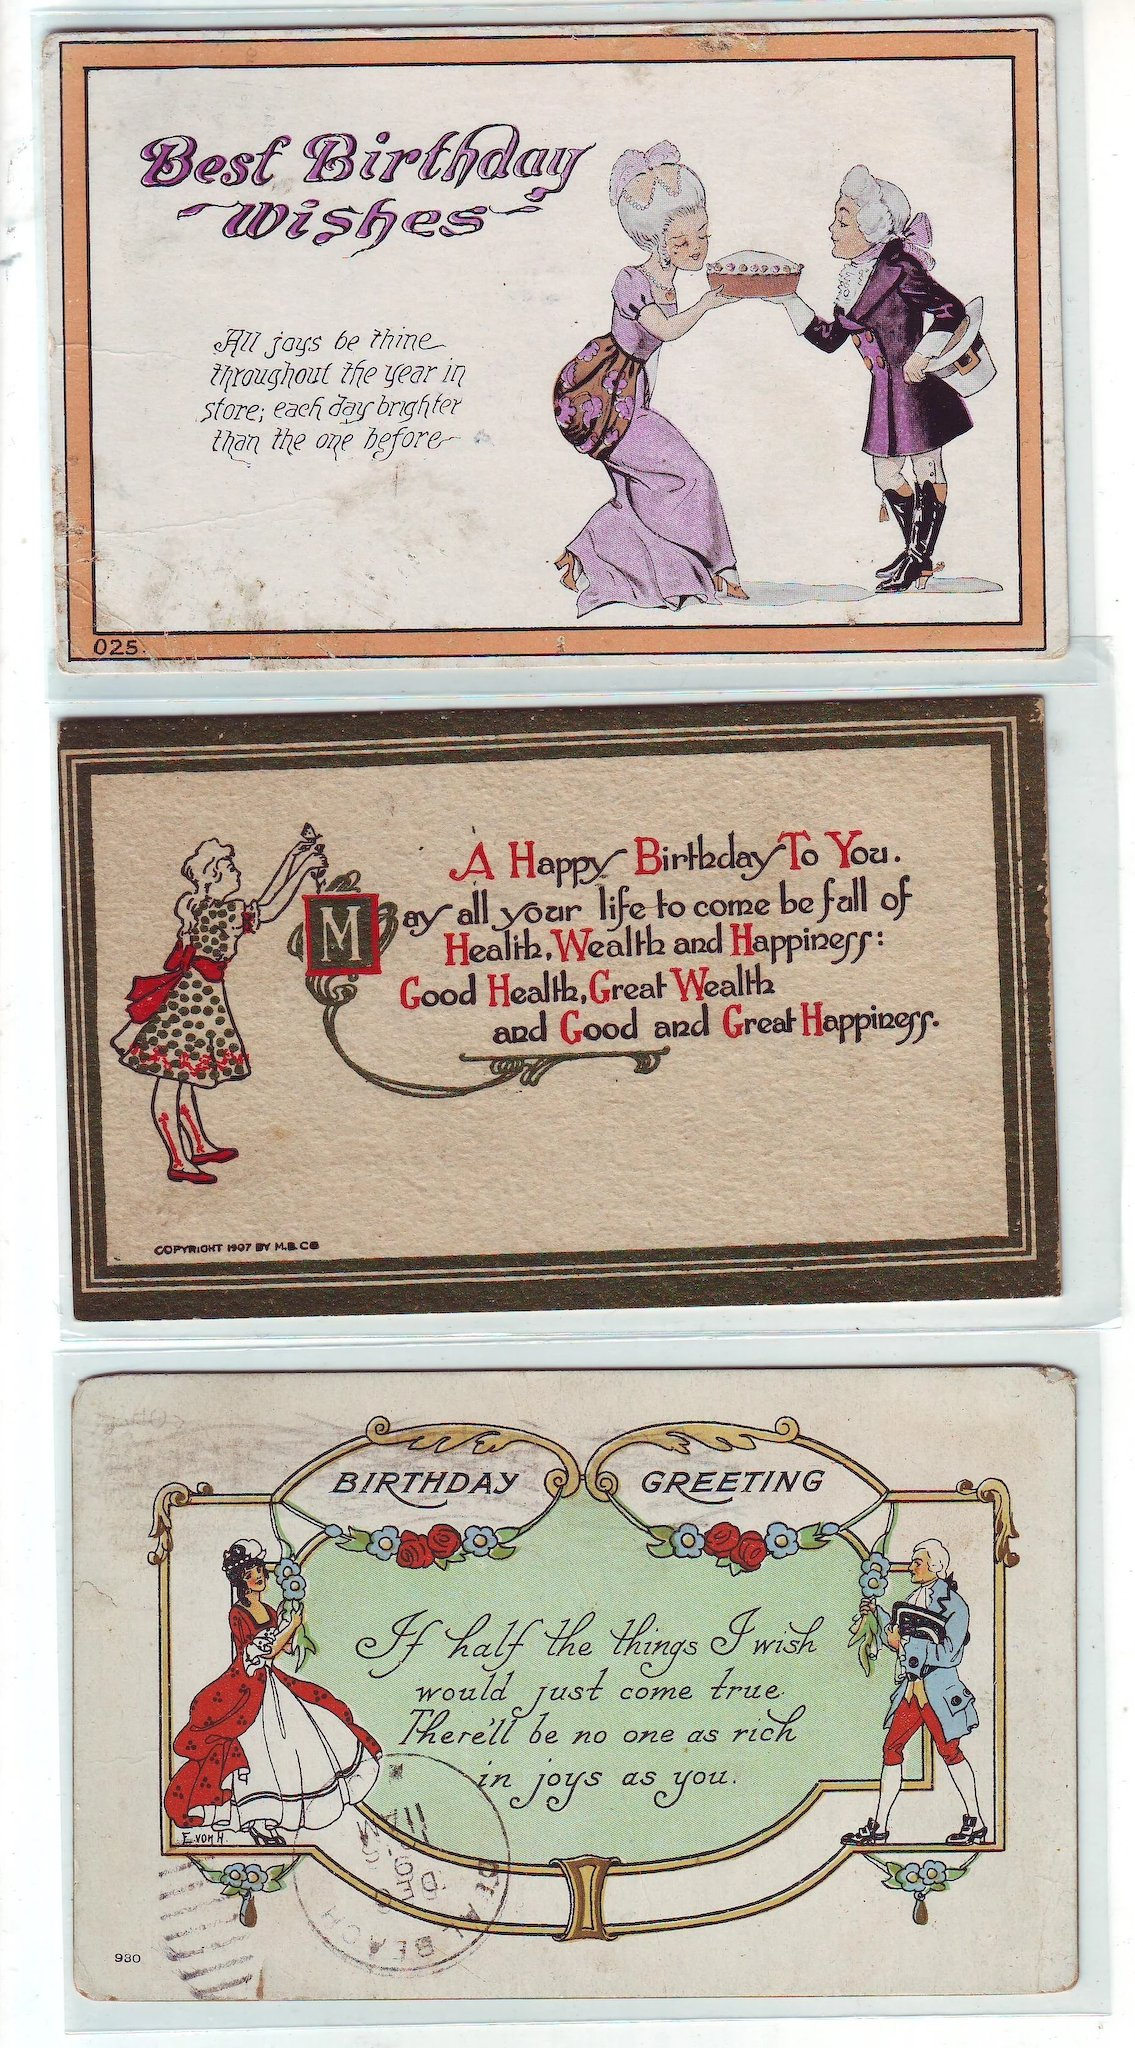 Twelve Birthday And Greeting Postcards From The Early 1900s